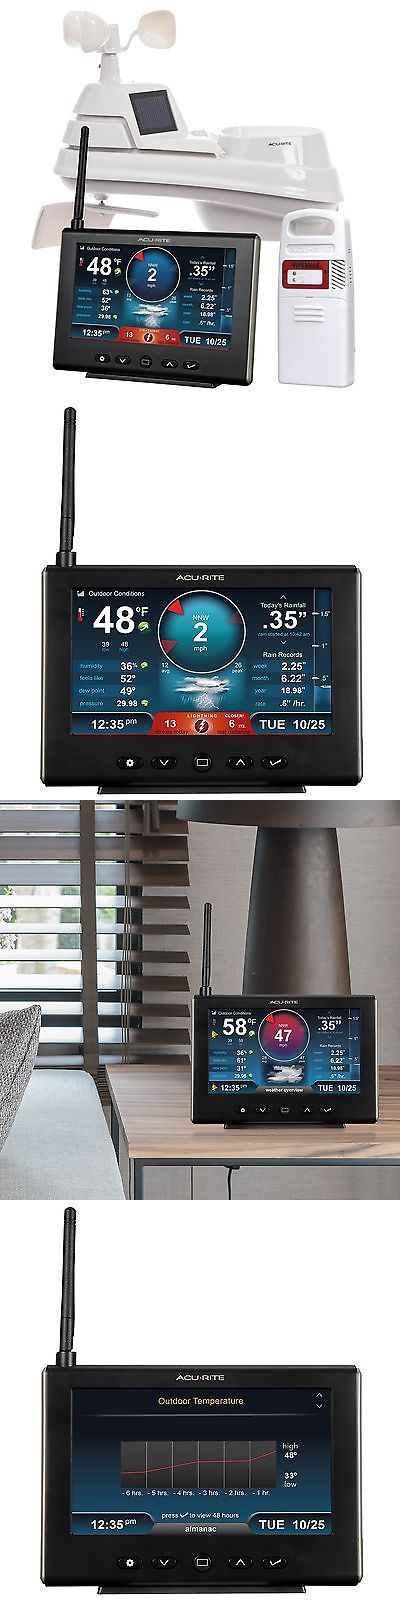 Weather Meters: Acurite 01024M Pro Weather Station With Hd Display, Lightning Detector, Rain -> BUY IT NOW ONLY: $203.01 on eBay!